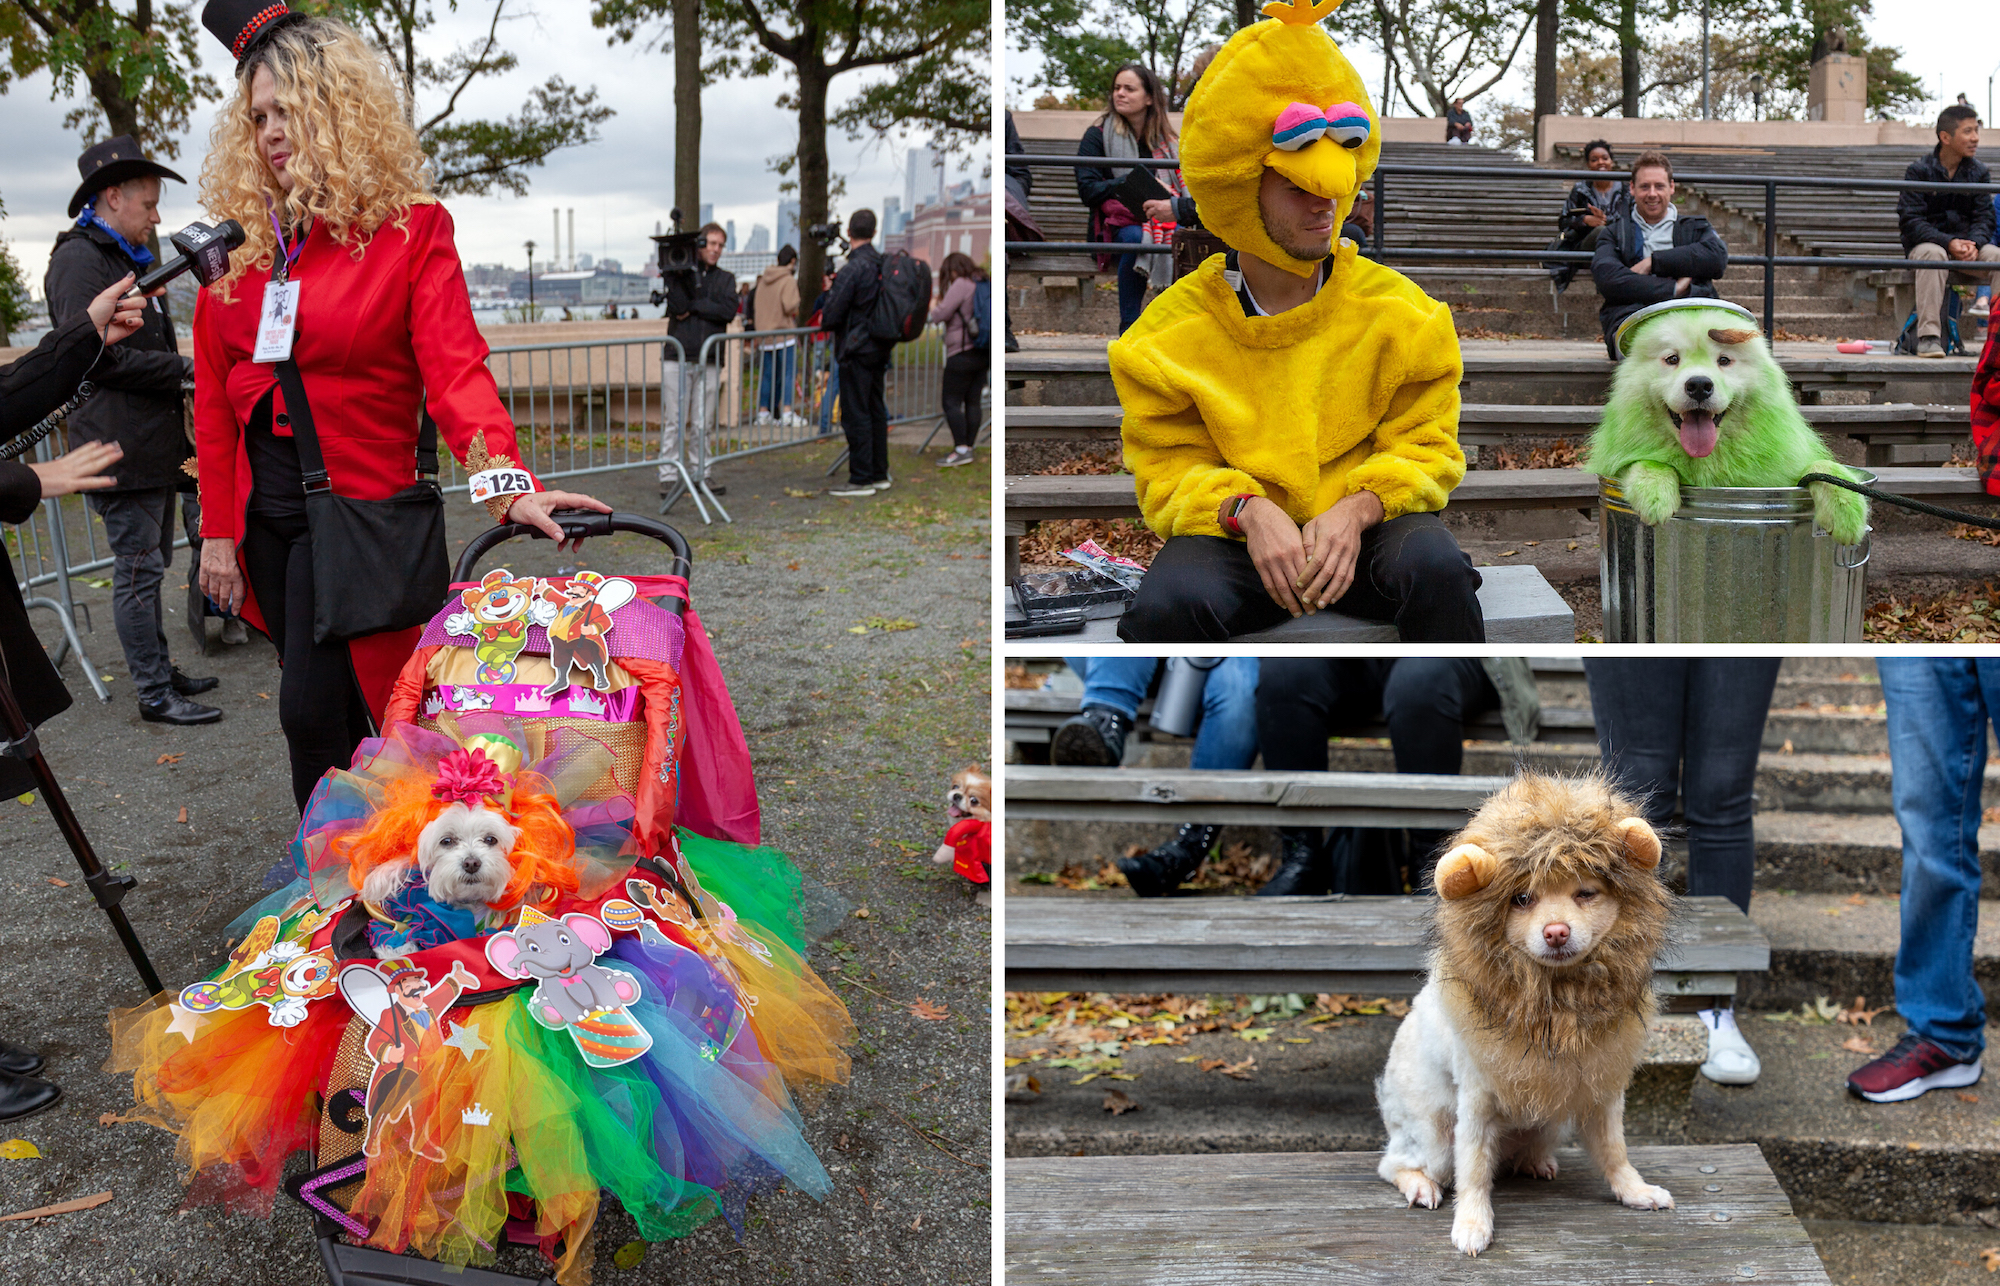 Halloween Dog Parade 2020 Tompkins Square Park PHOTOS: See the best costumes from this year's Tompkins Square